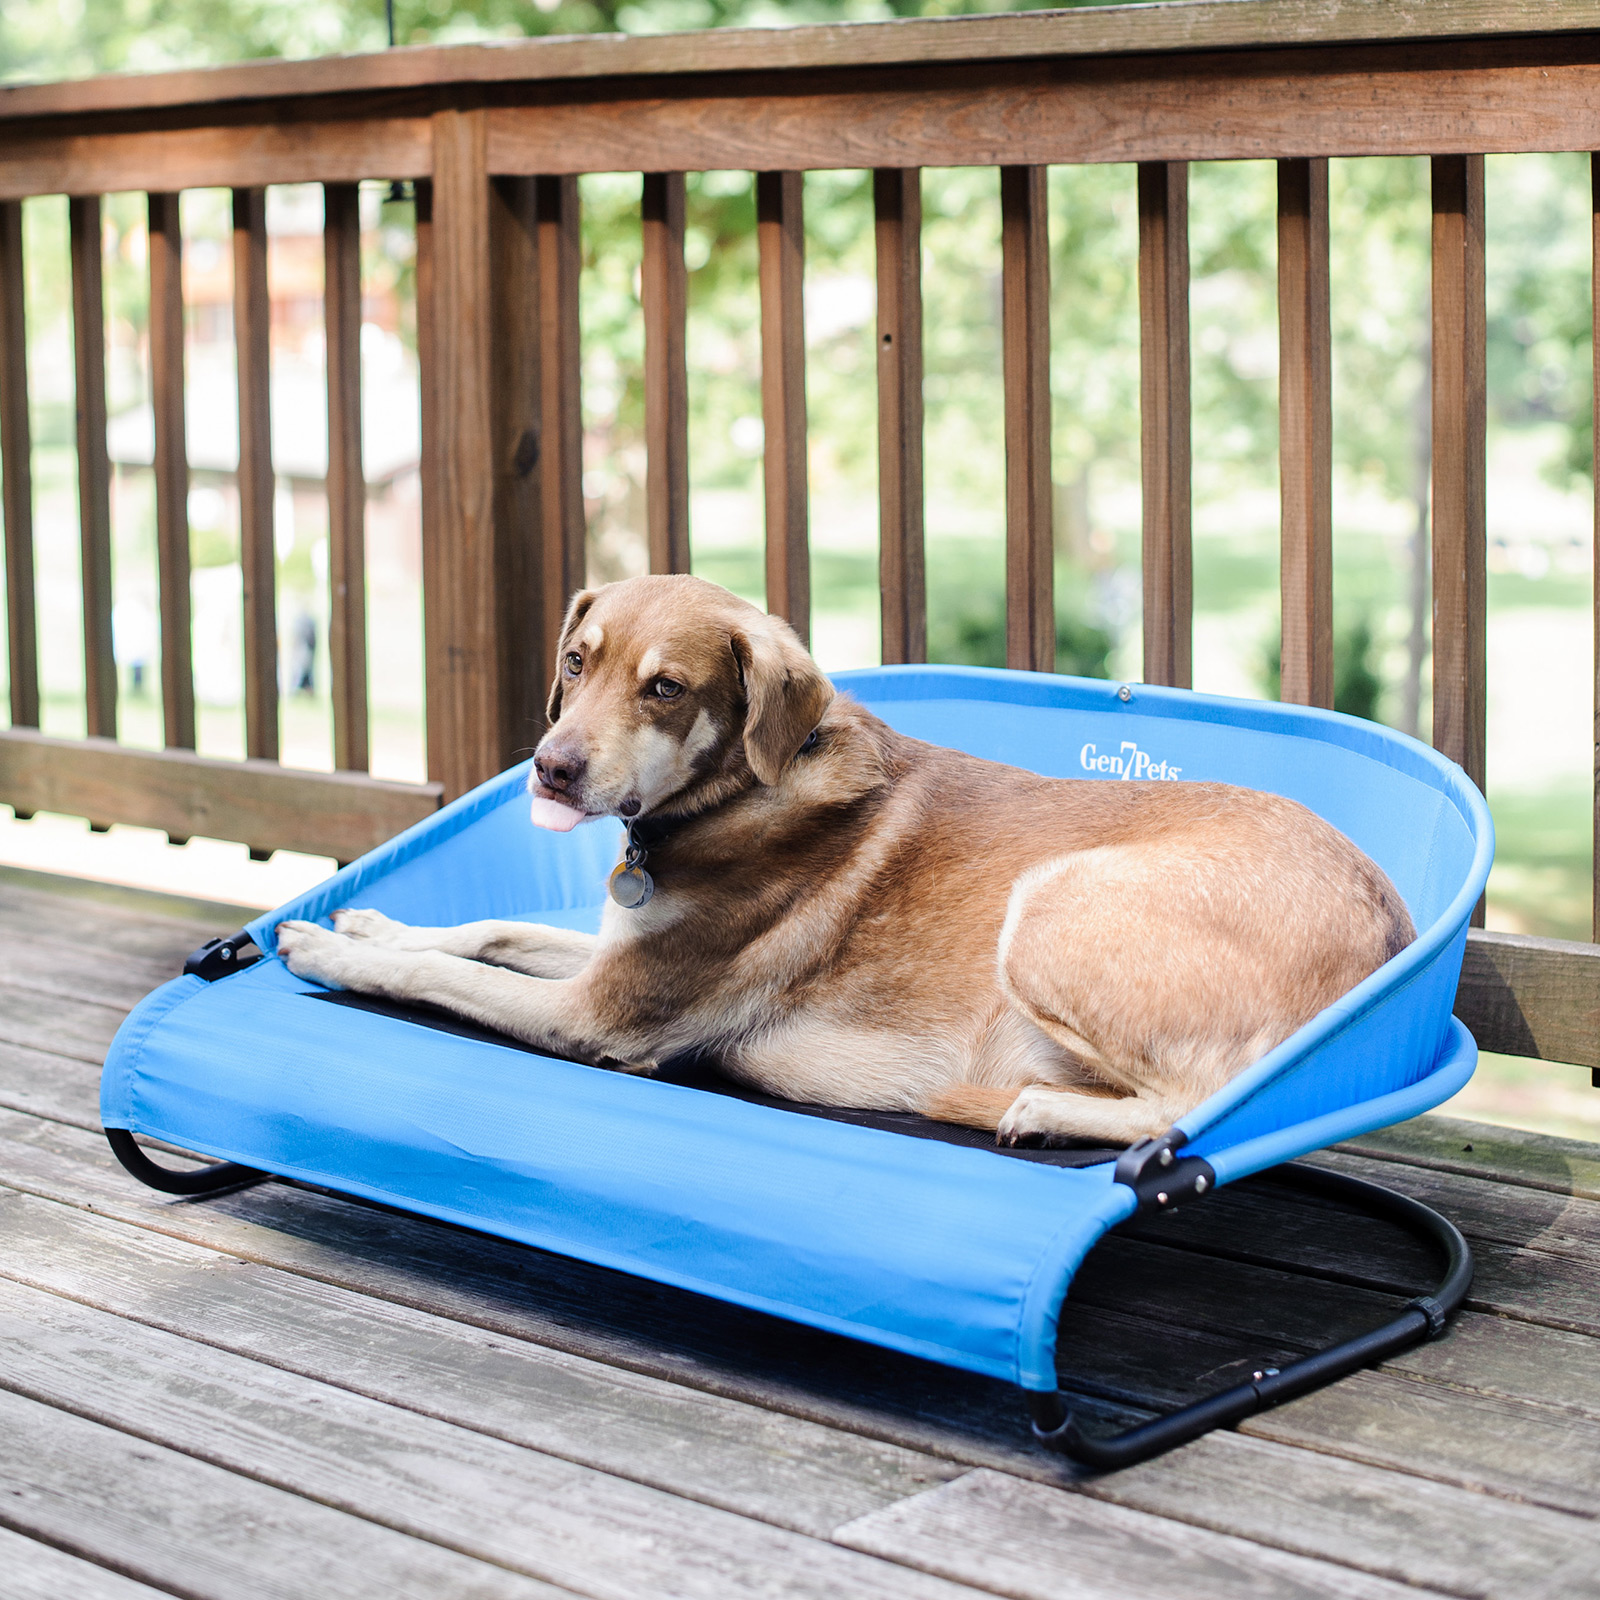 coolair dog cot an outside dog bed to use anywhere - the coolair dog cot an outside dog bed to use anywhere